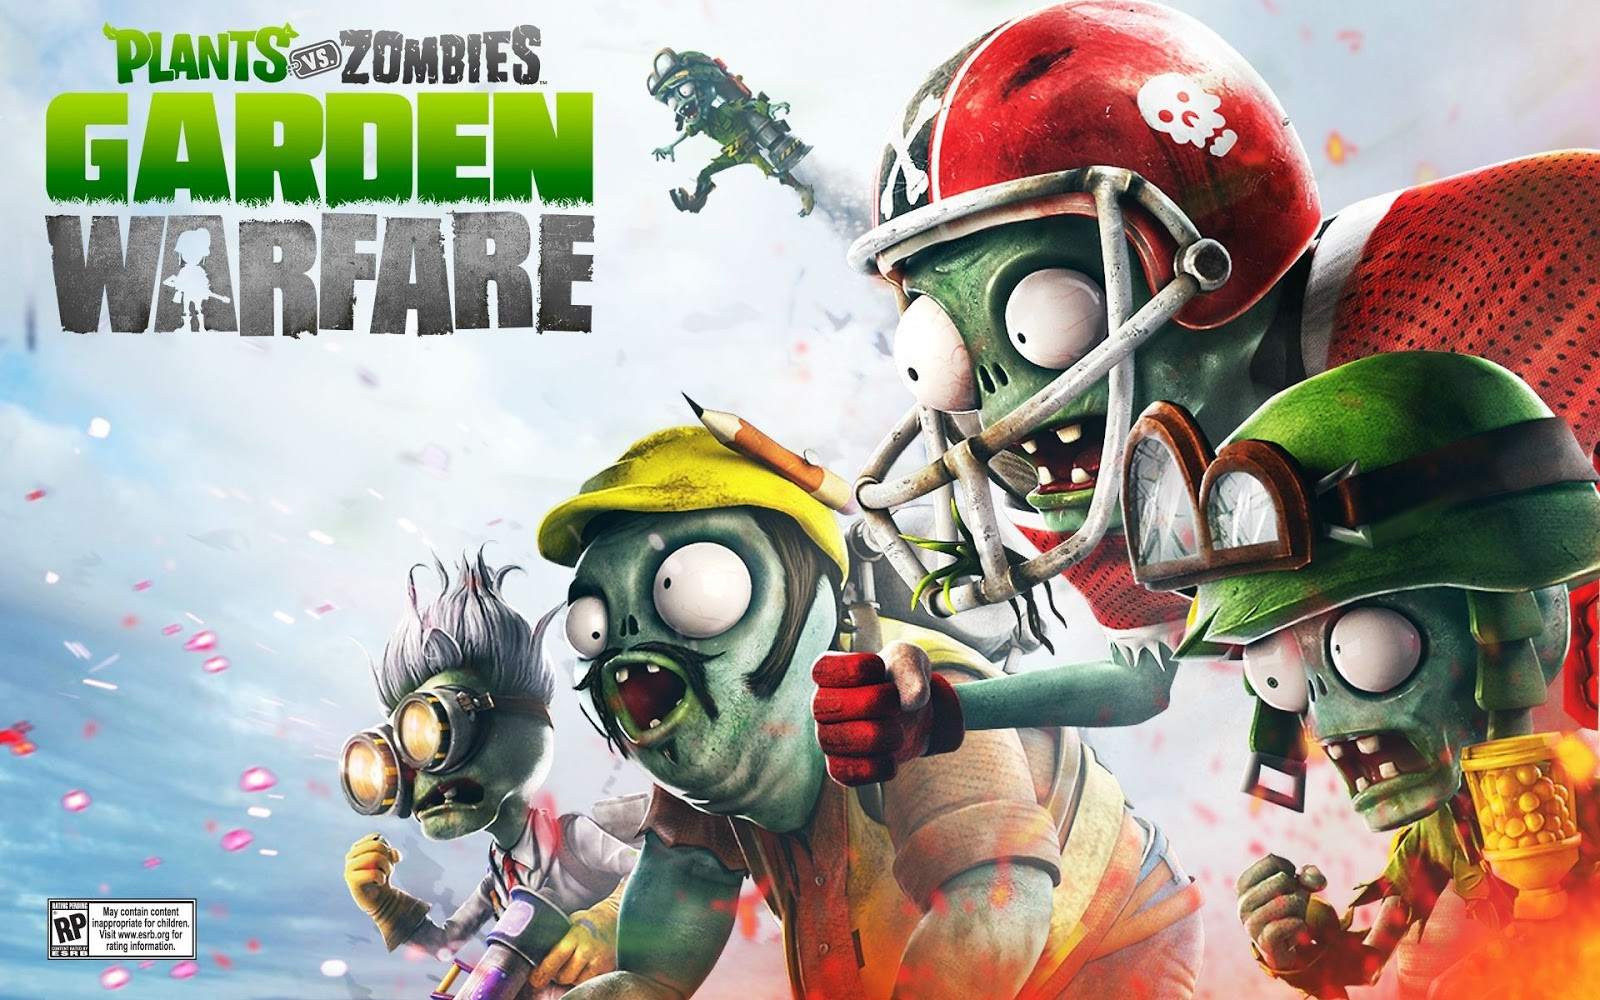 Plants vs zombies garden warfare 2 for xbox e3 coverage Plants vs zombies garden warfare 2 event calendar